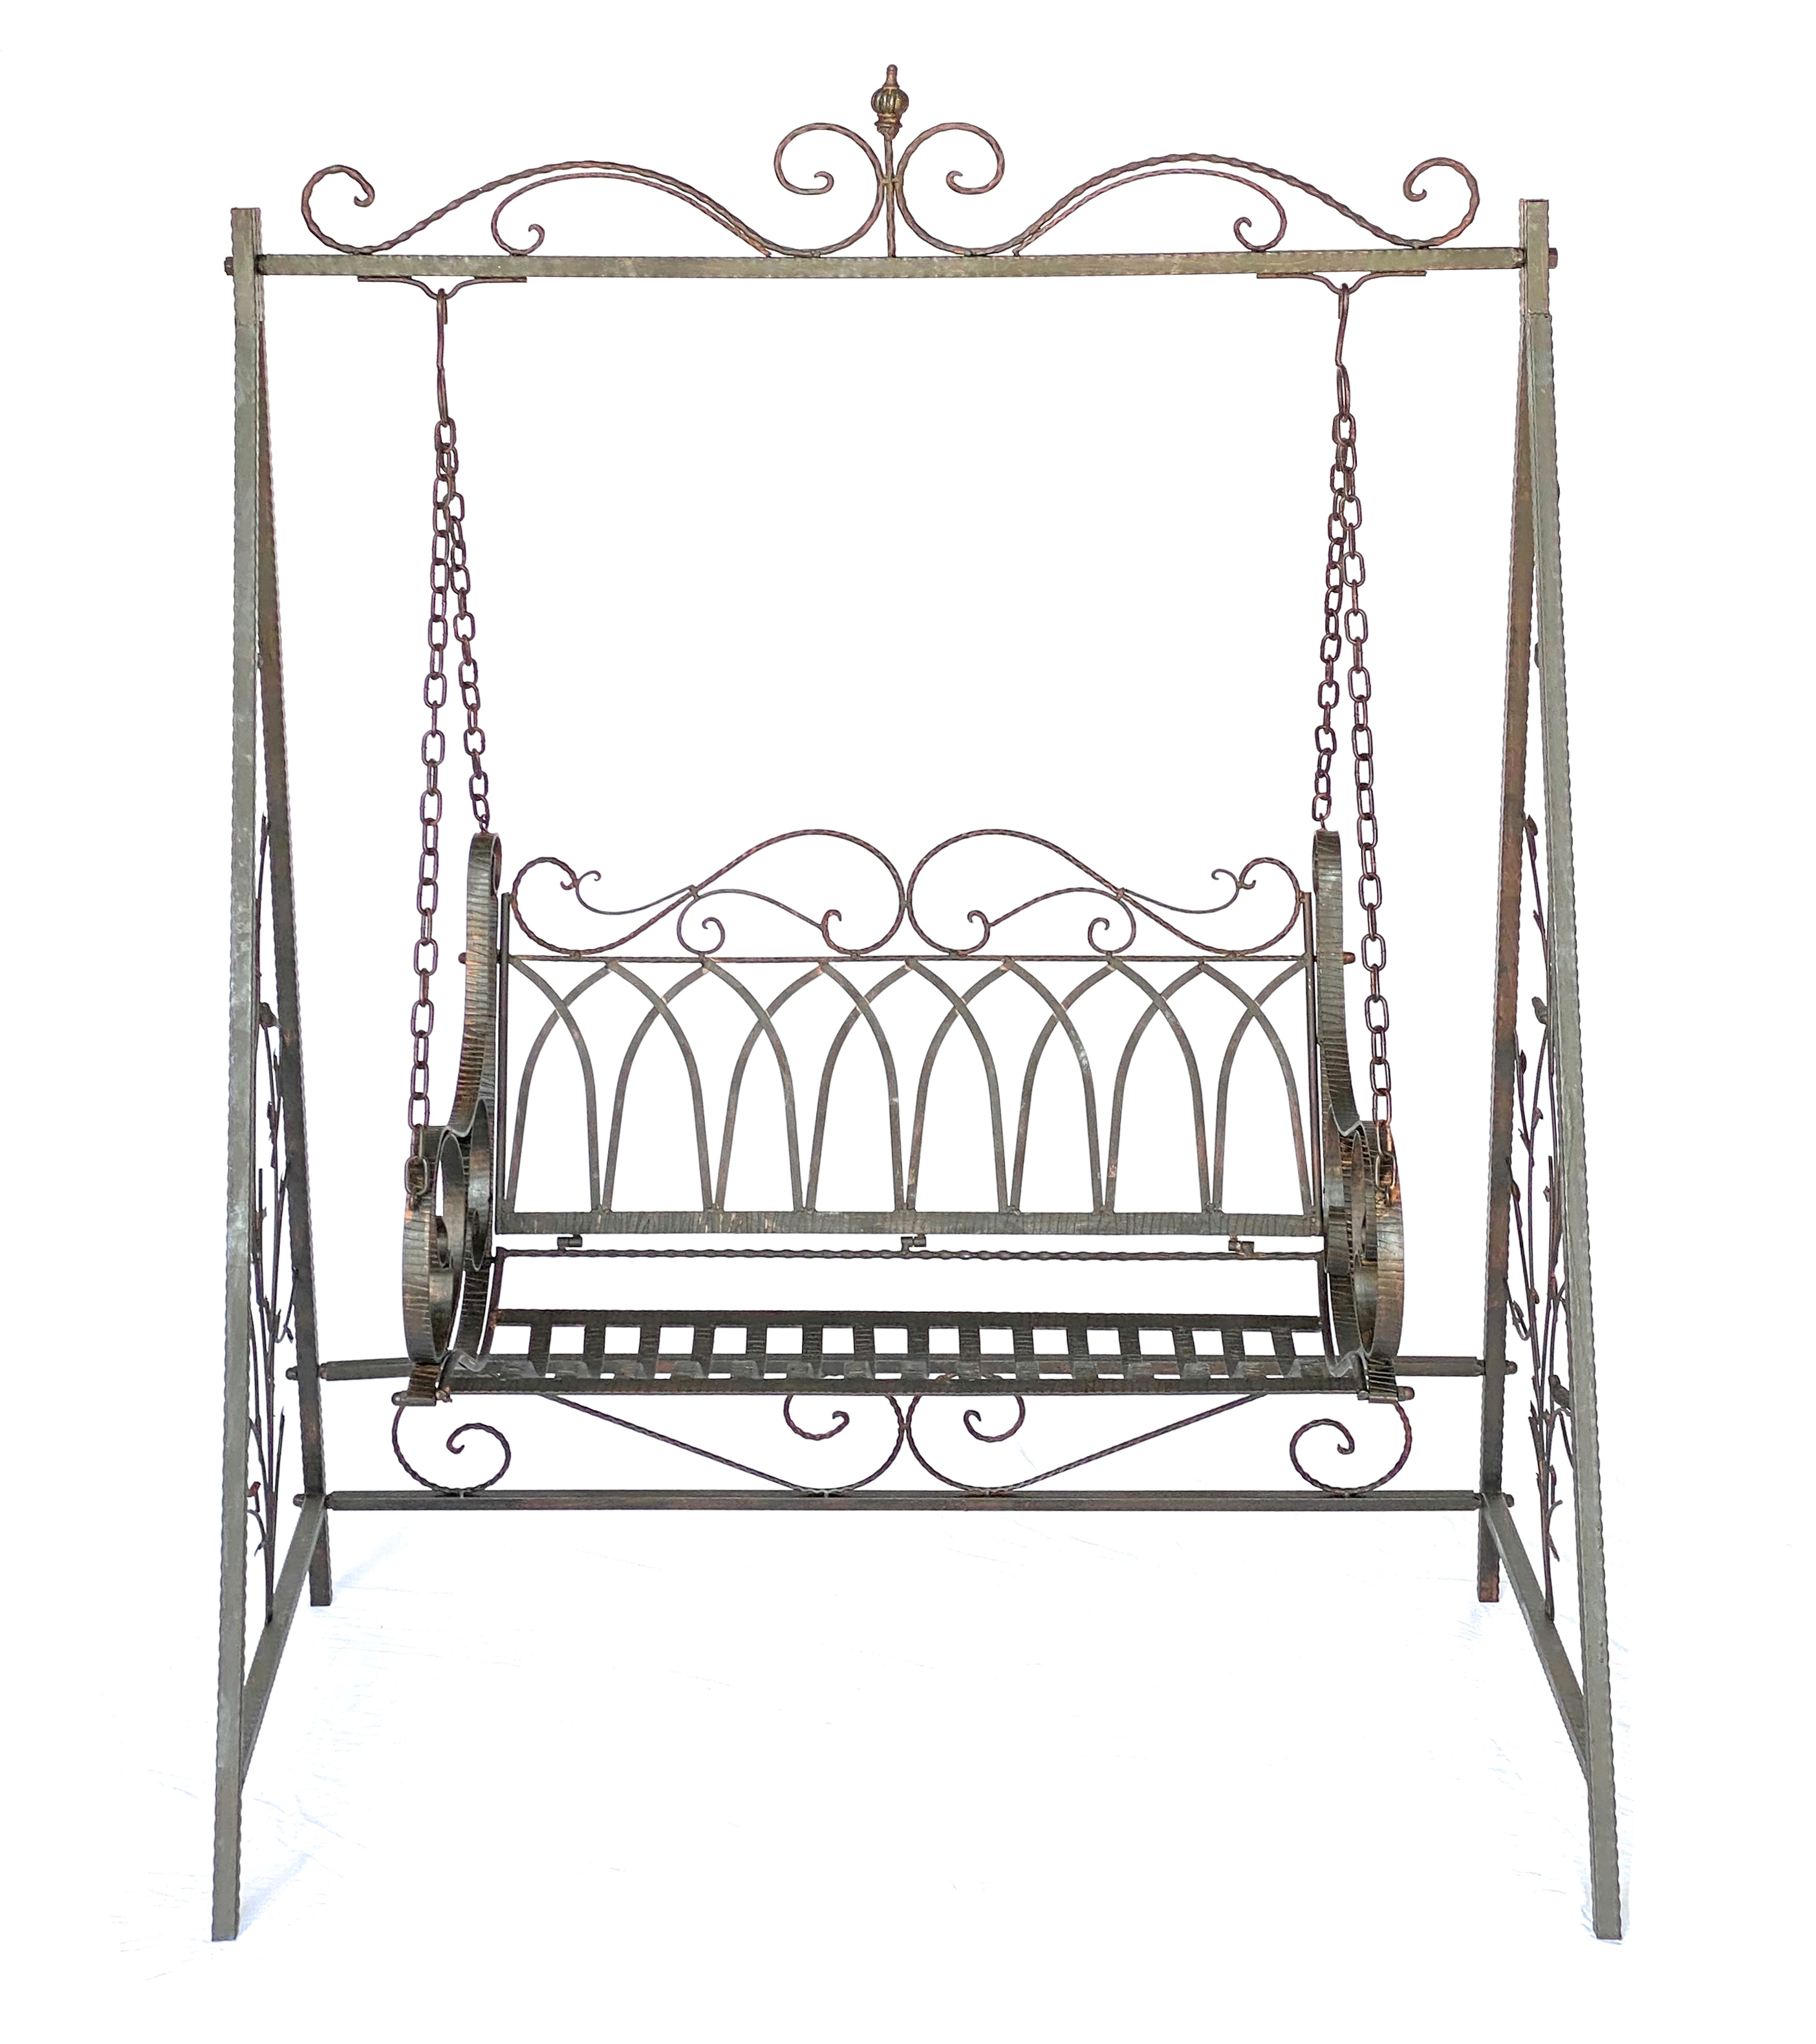 swing swing seat 18688 with chains metal wrought iron. Black Bedroom Furniture Sets. Home Design Ideas